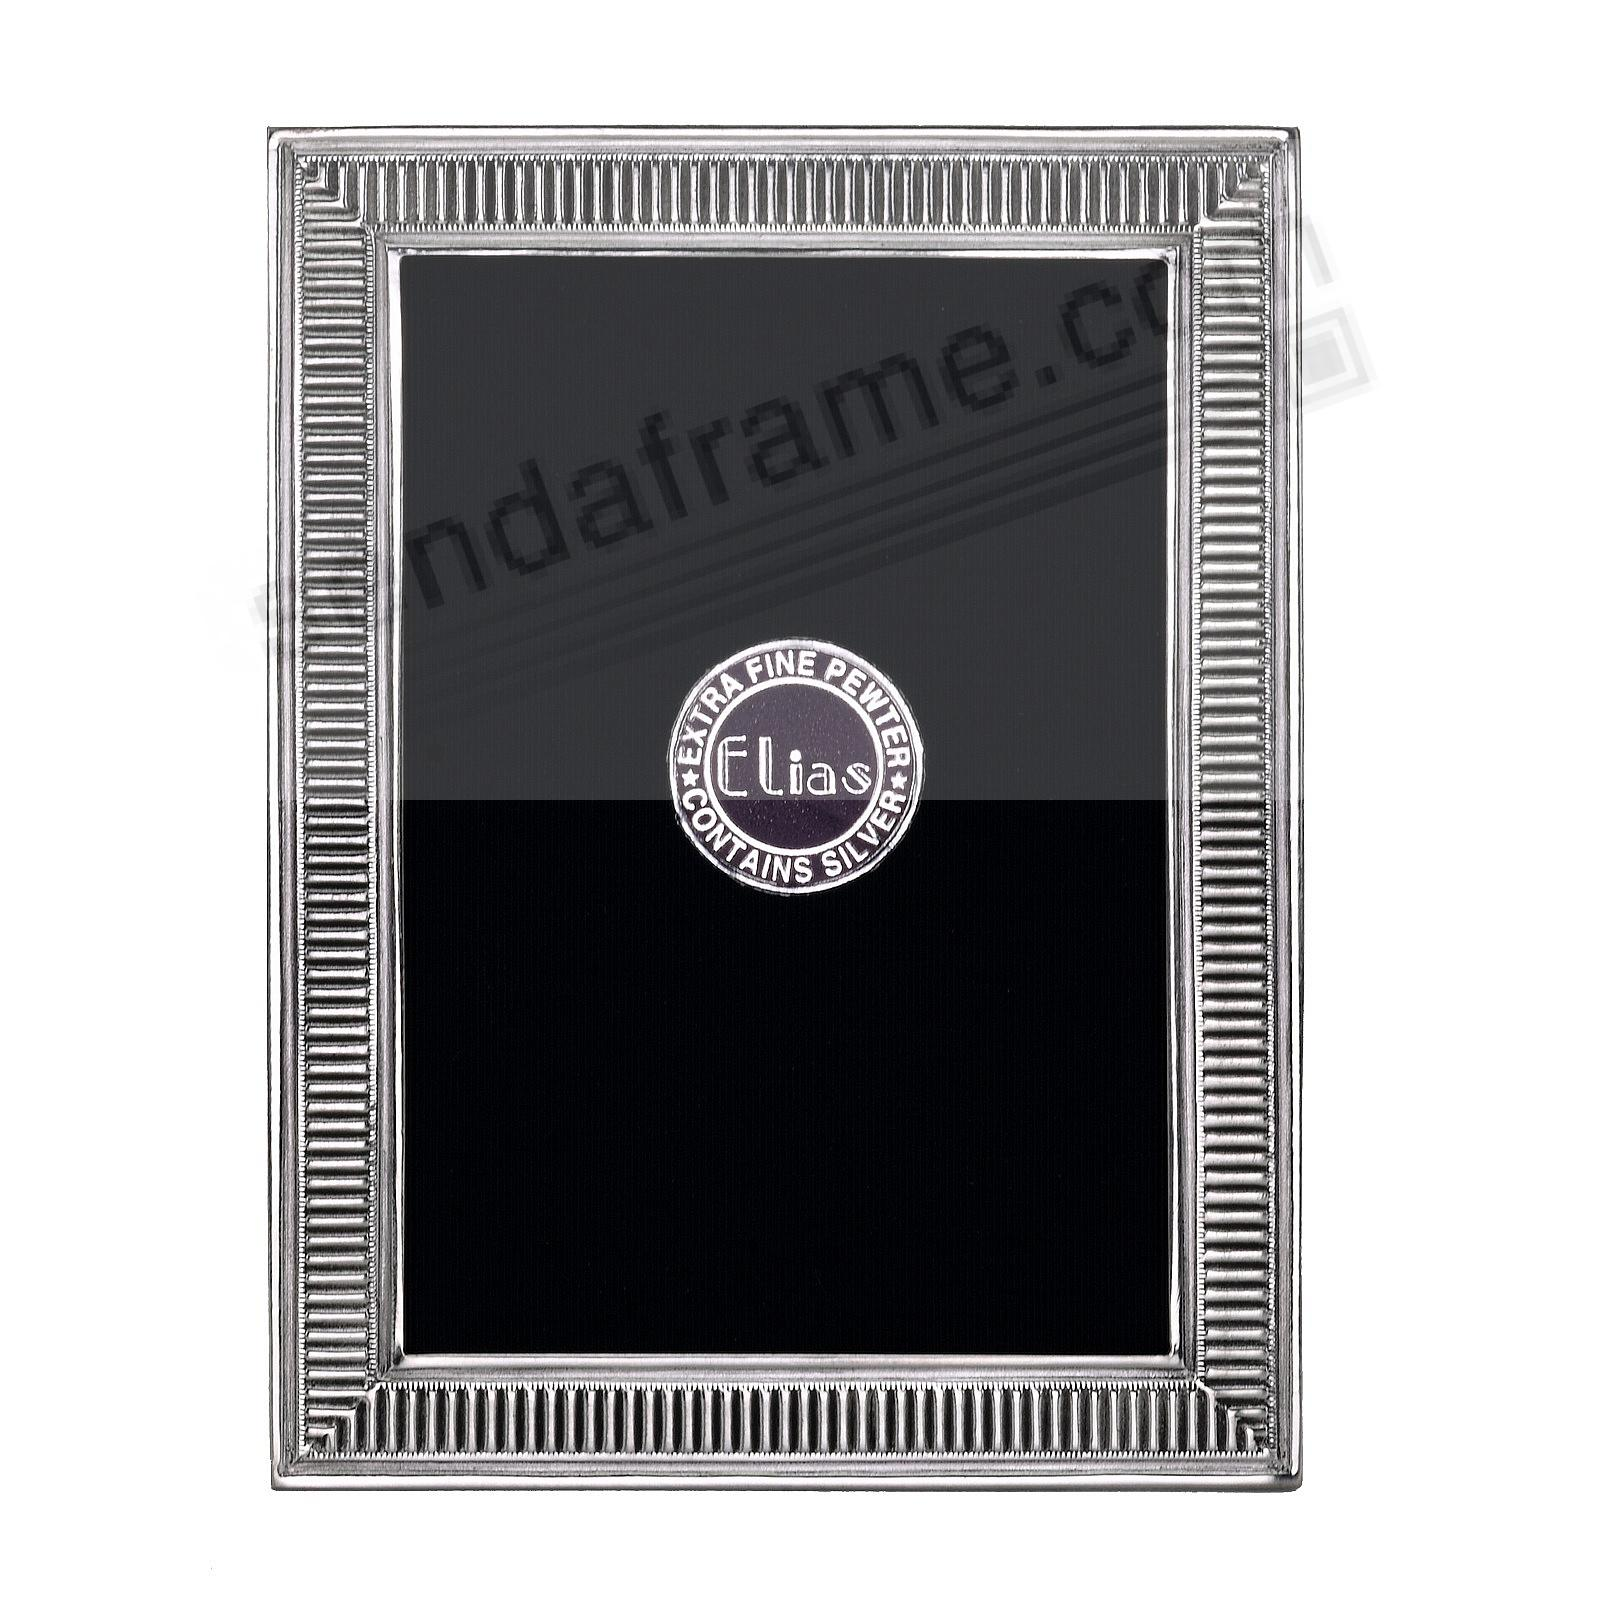 LINE BY LINE Fine Silvered Pewter frame 2½x3½ by Elias Artmetal®